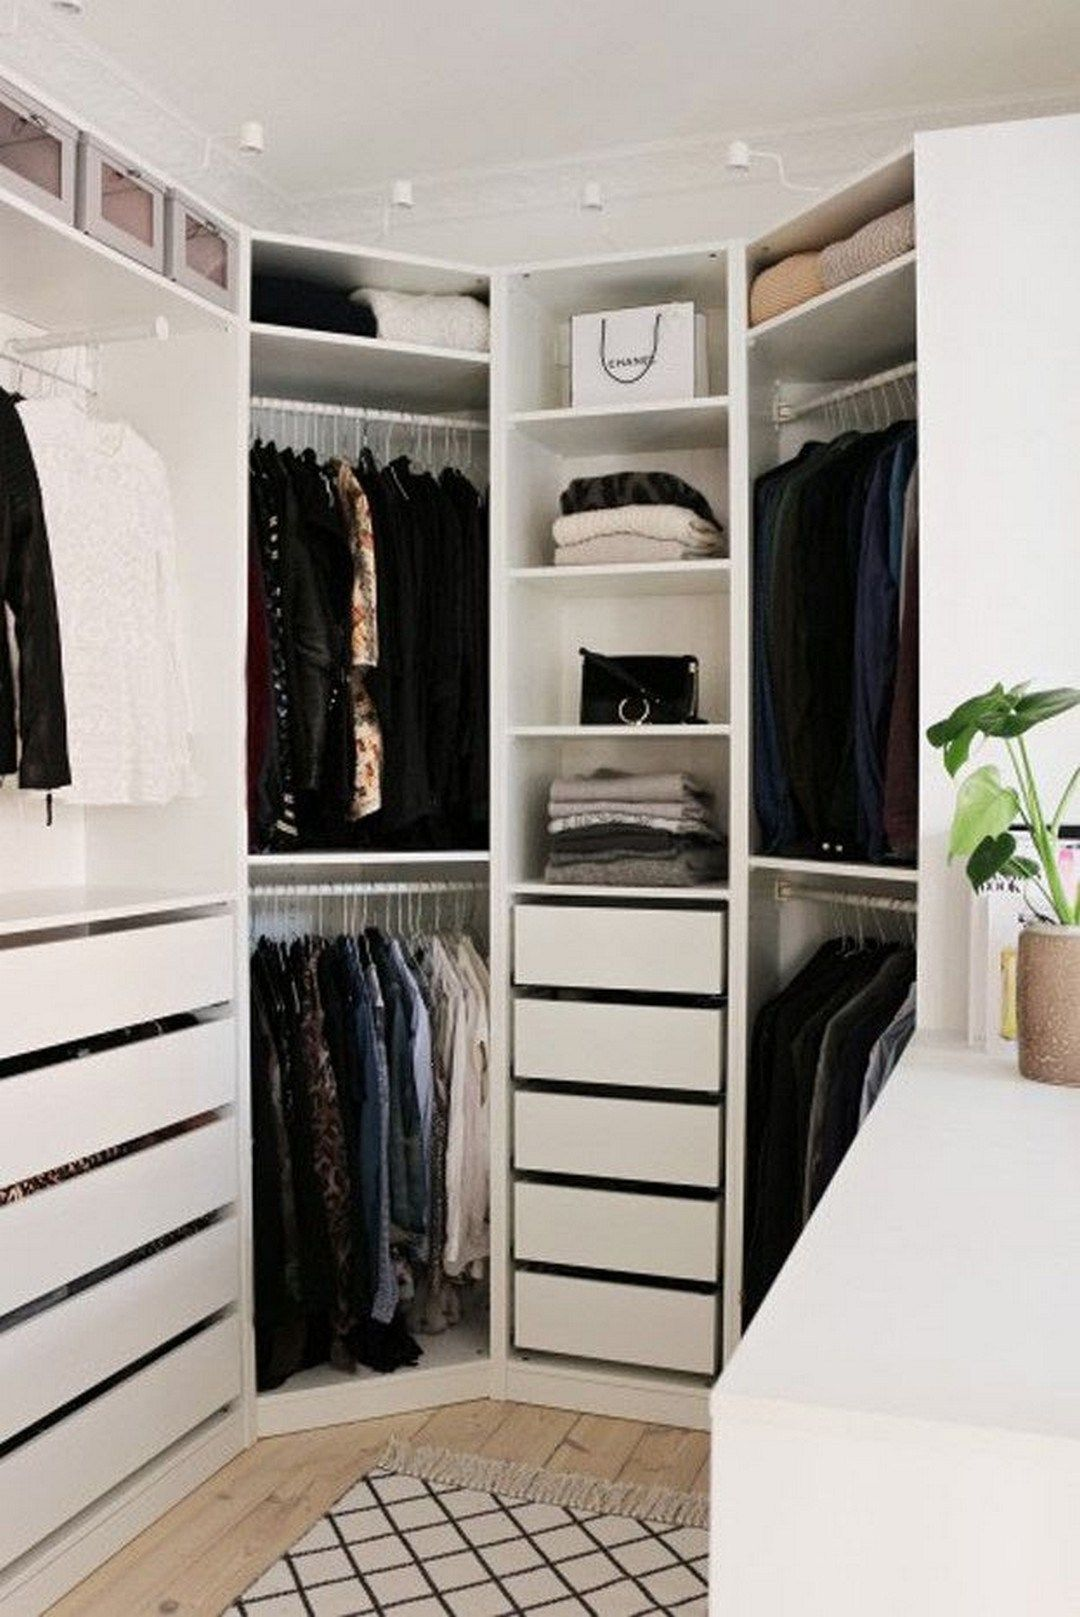 Incredible IKEA Bedroom, Shelves And Storage Ideas (1 ...